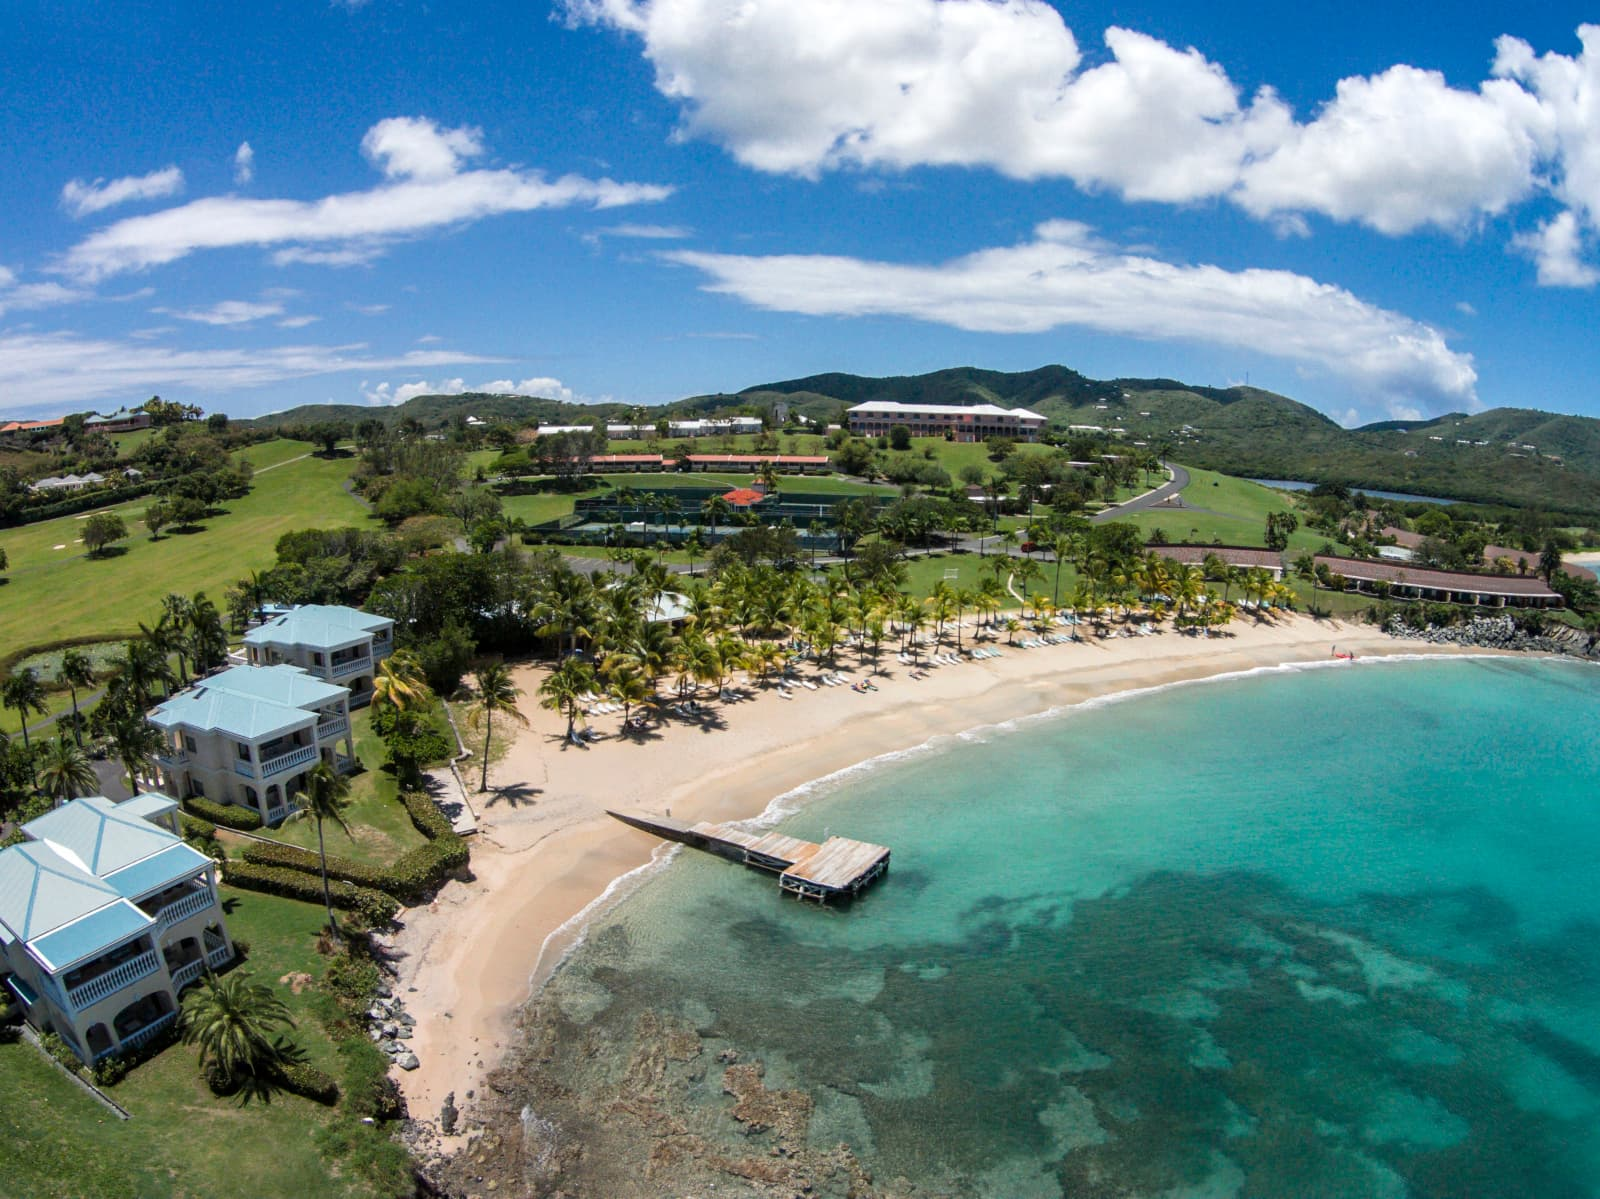 The Buccaneer - one of the best tennis resorts for your tennis holidays in U.S. Virgin Islands